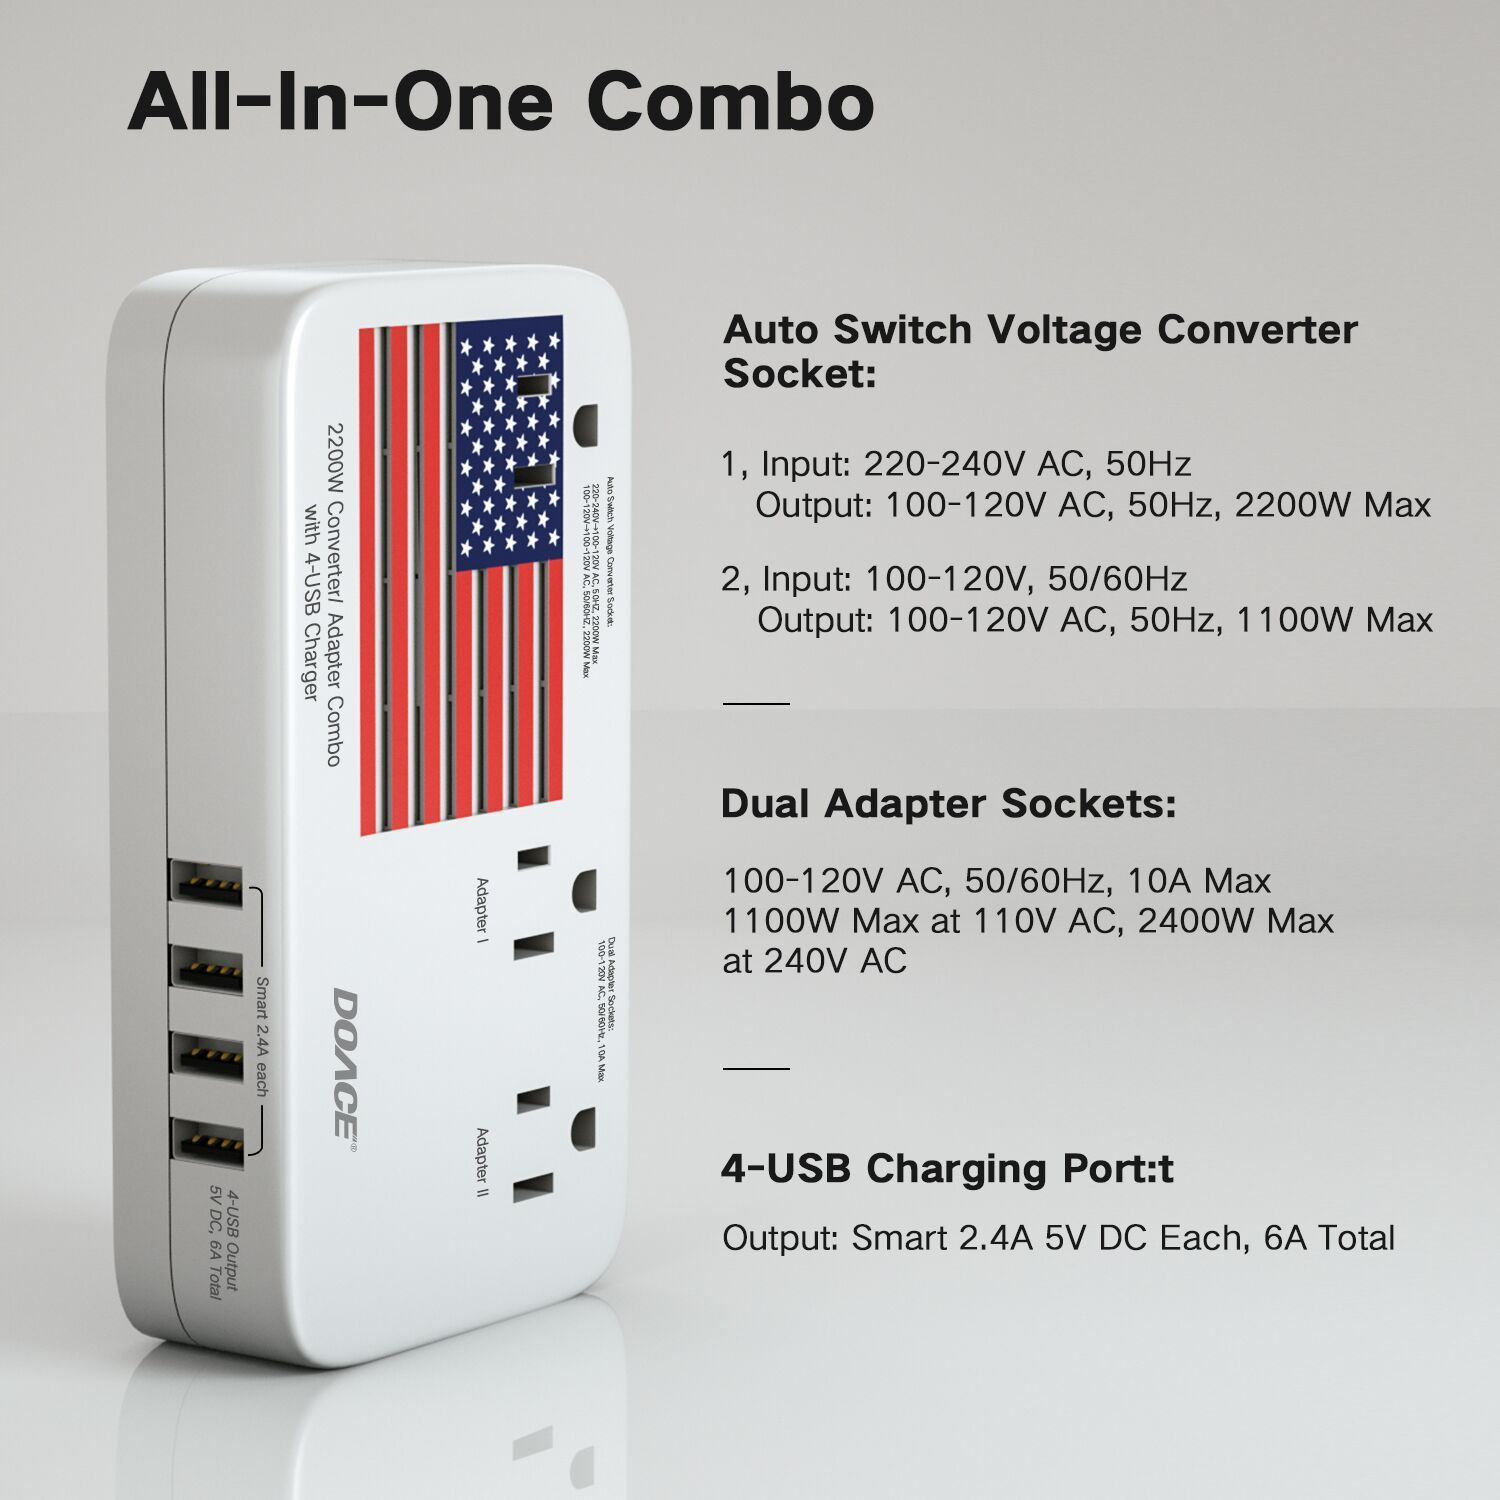 One auto-switch voltage converter socket: automatically identify and